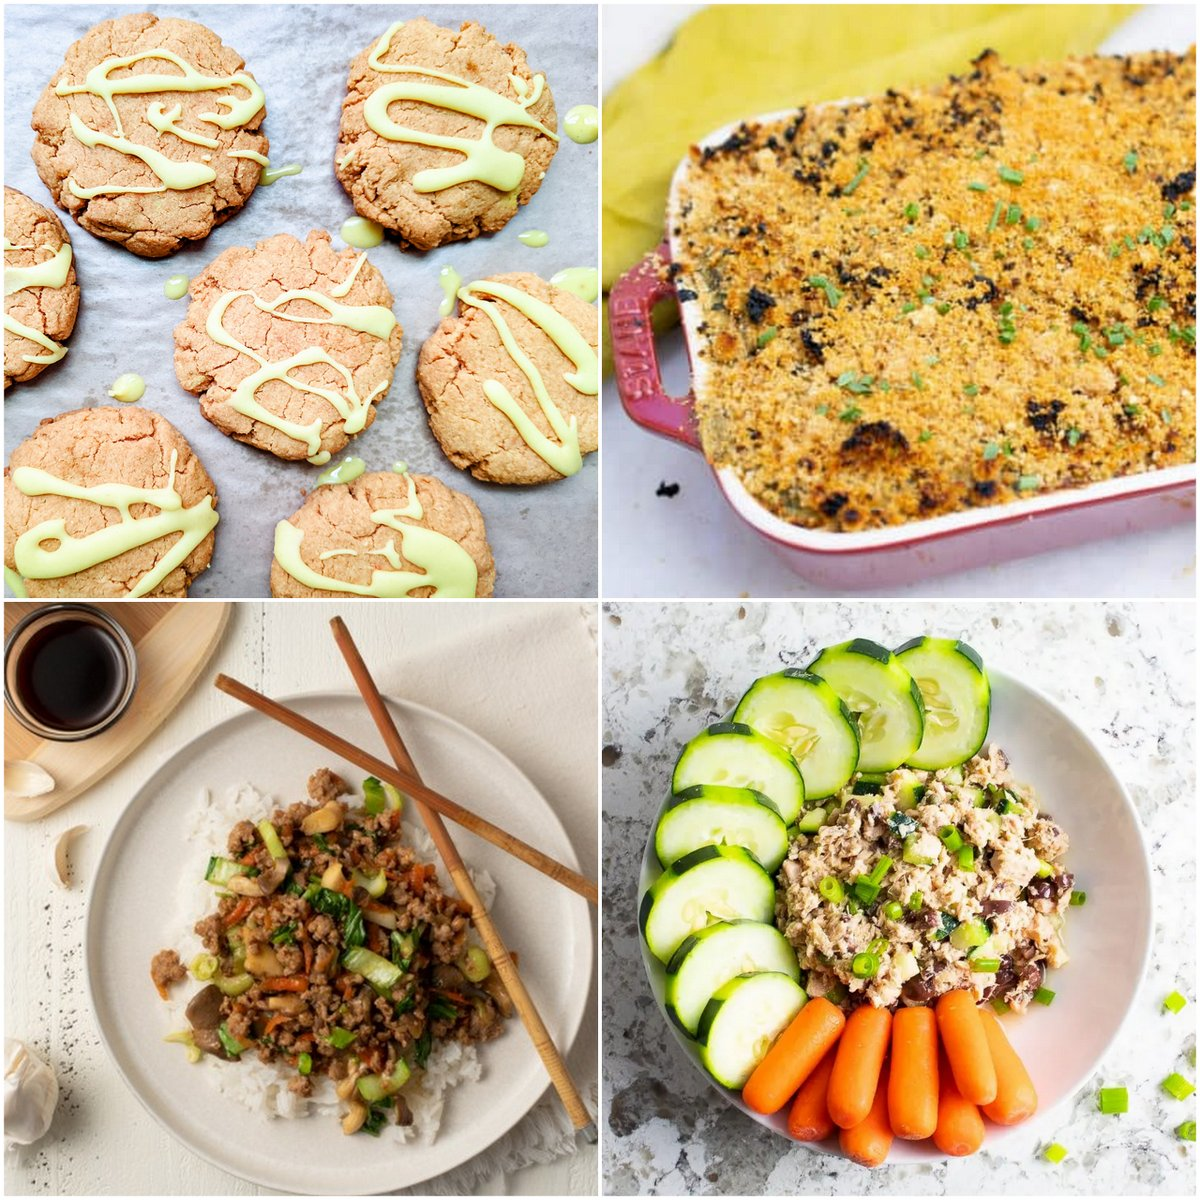 Paleo AIP Recipe Roundtable #372   Phoenix Helix - *Featured Recipes: Golden Turmeric Coconut Cookies, Creamy Chicken & Spinach Casserole, Easy Pork Stir-Fry, and Quick No-Mayo Greek Tuna Salad.